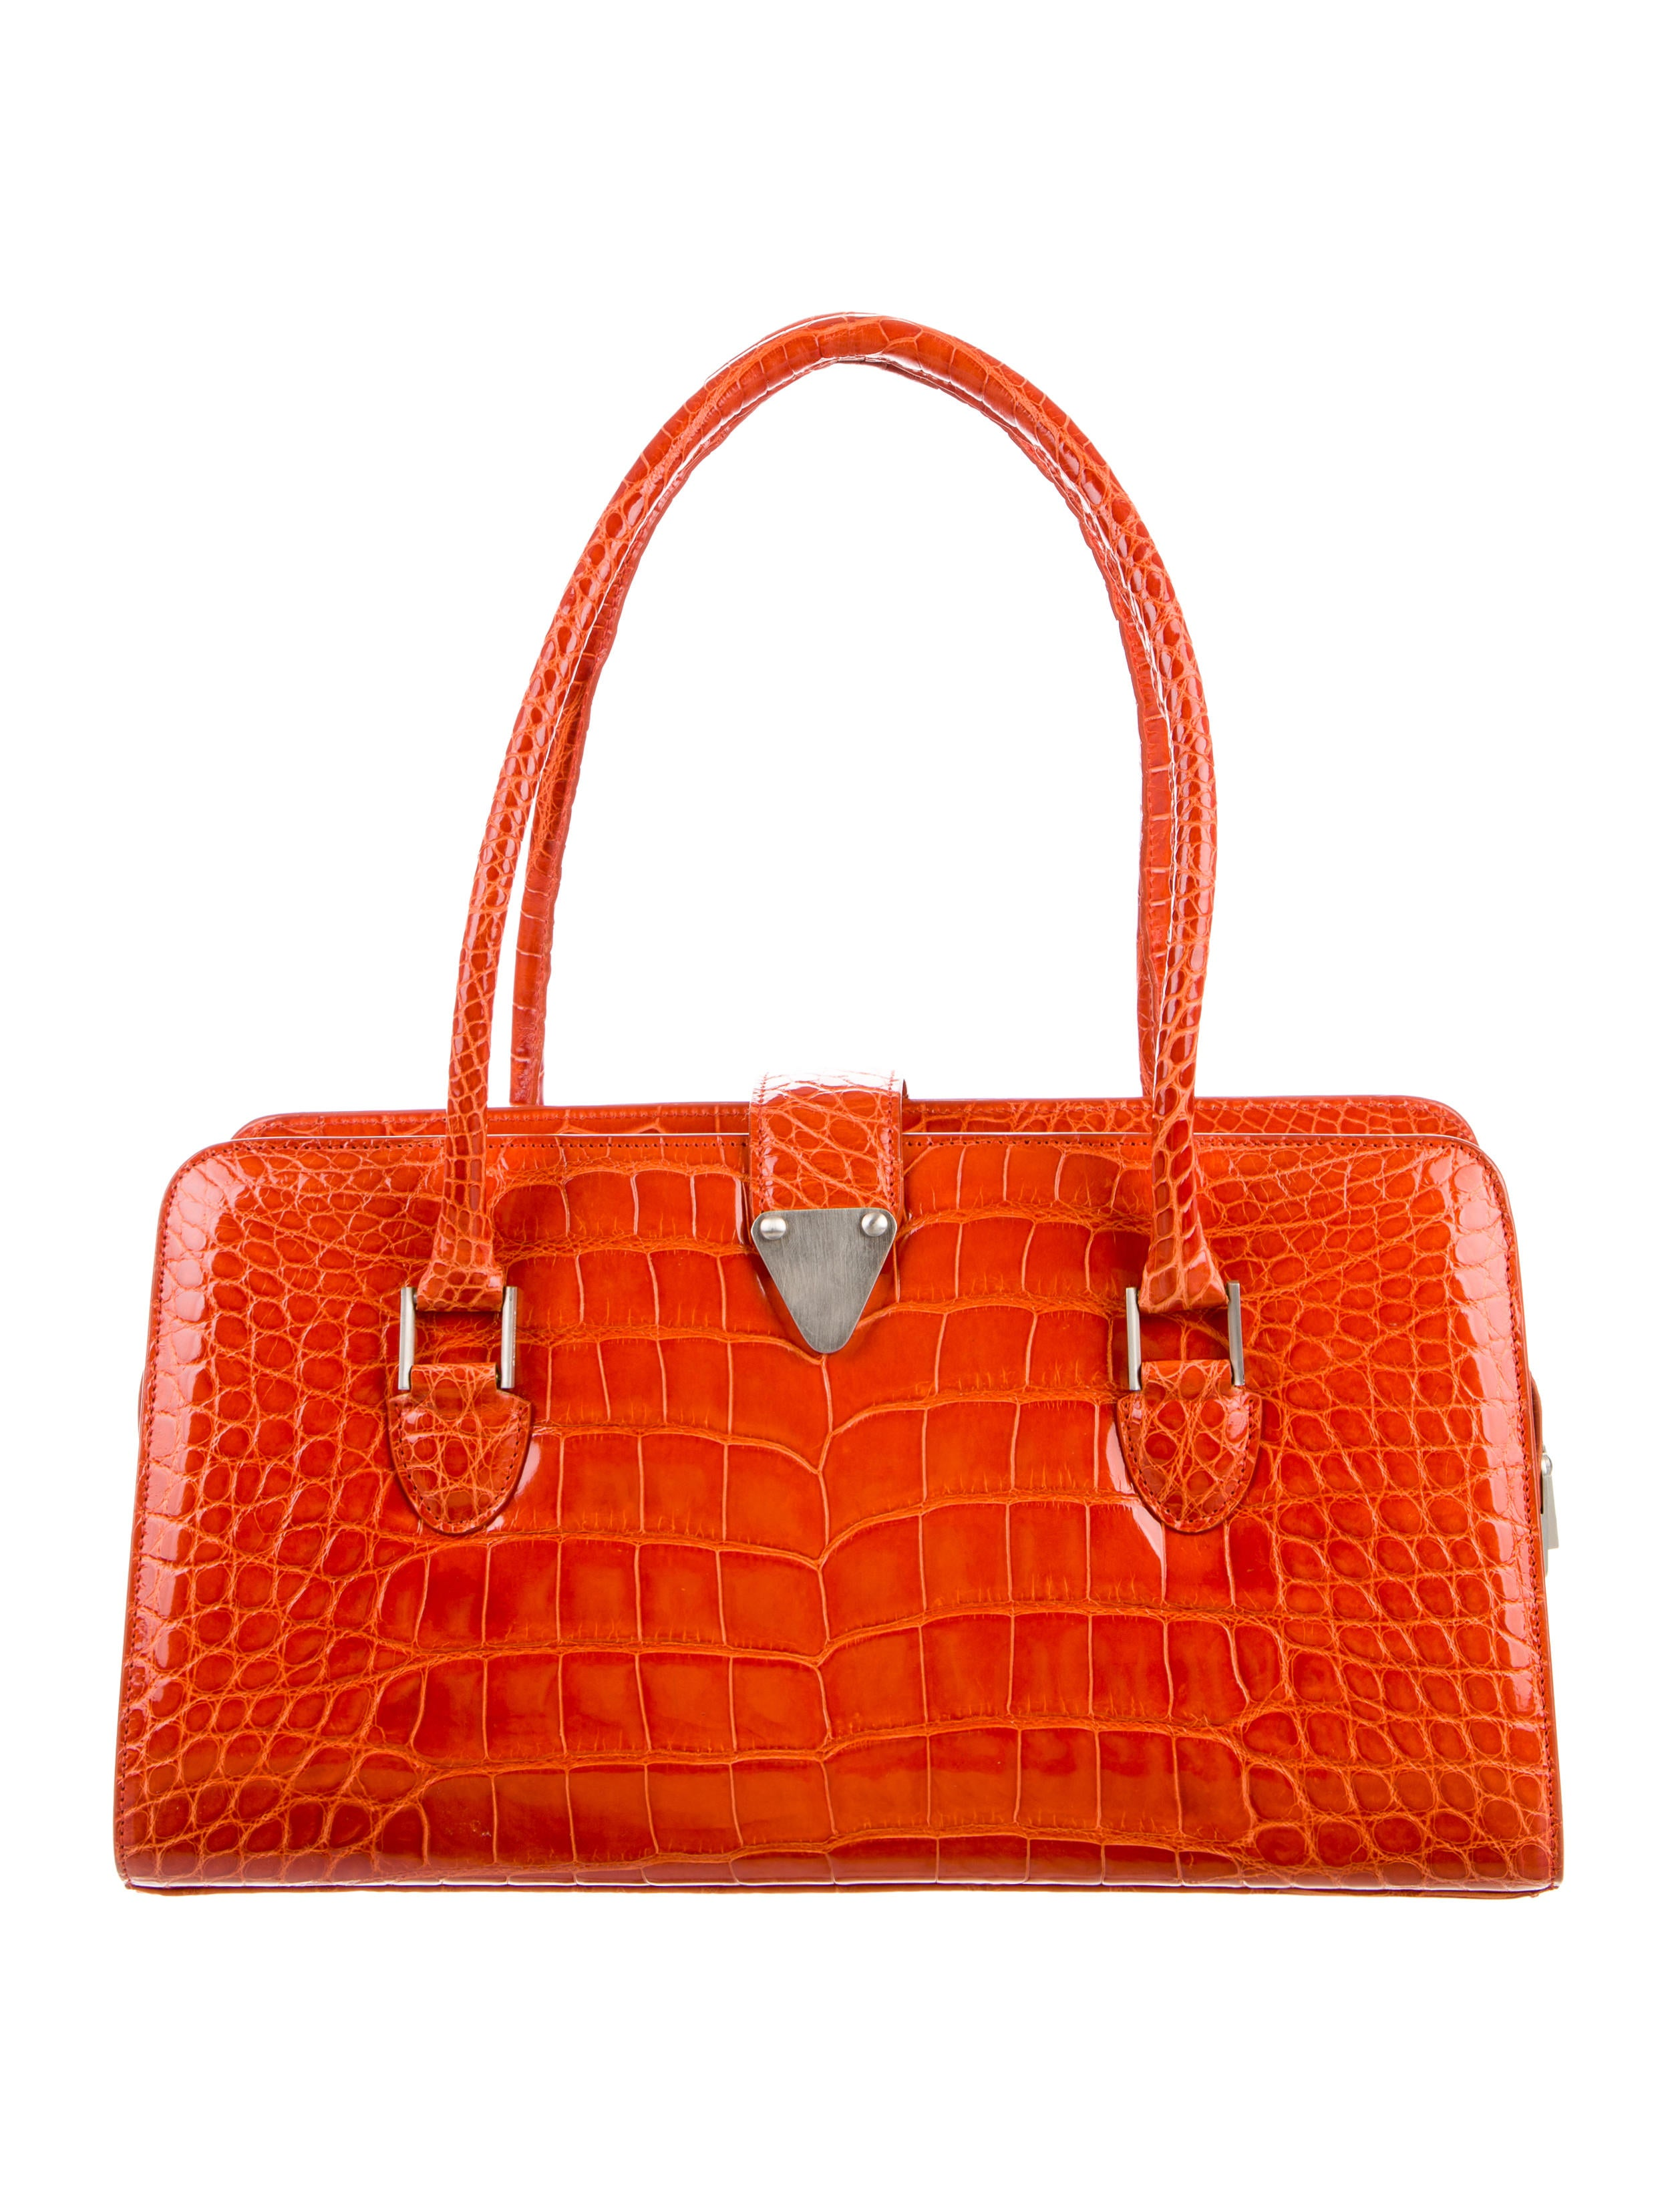 Manolo Blahnik Alligator Shoulder Bag